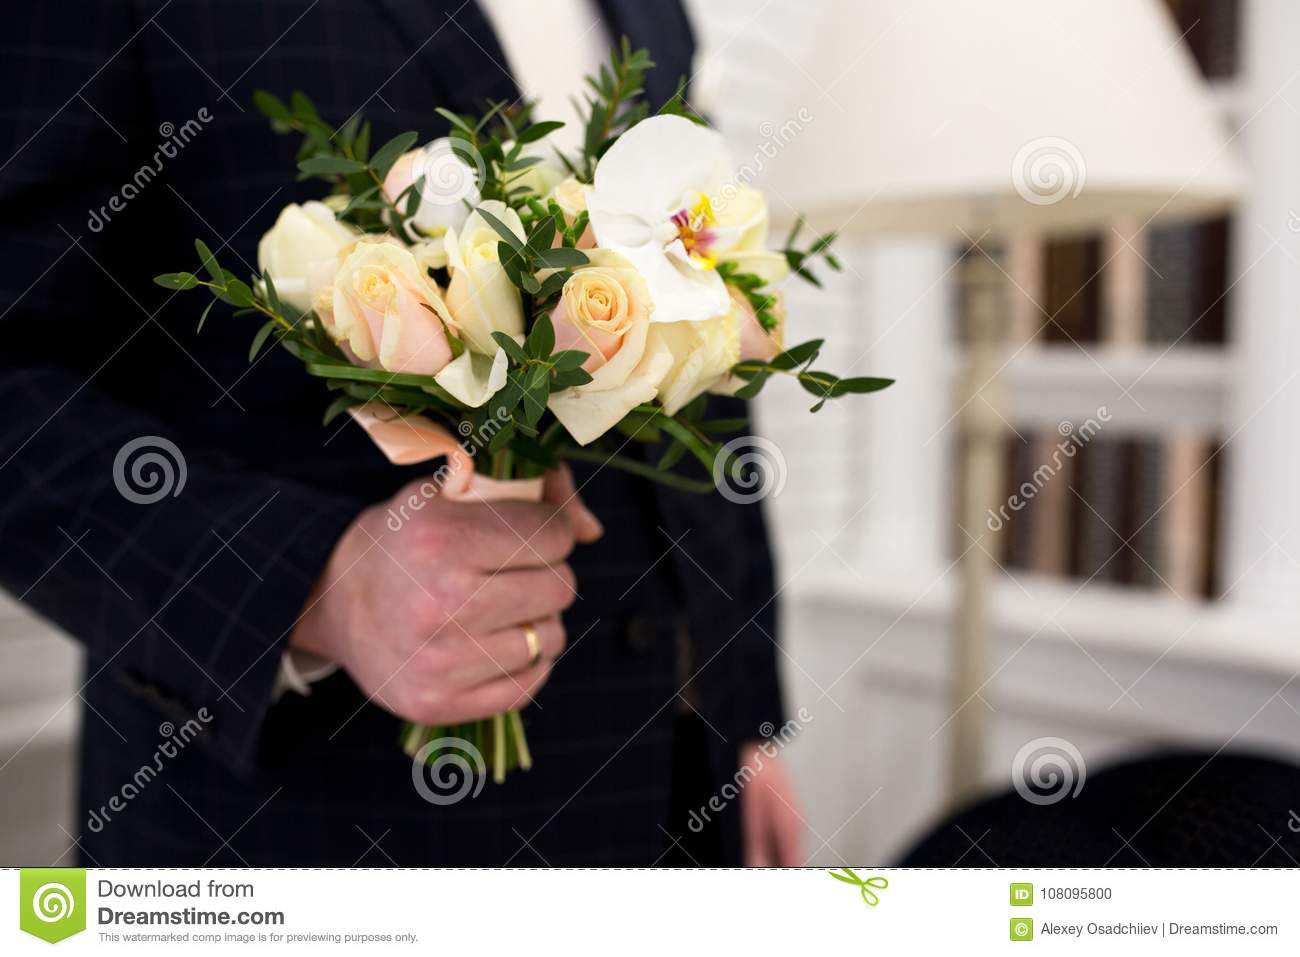 Man with flower bouquet stock photo image of bloom 108095800 man with flower bouquet izmirmasajfo